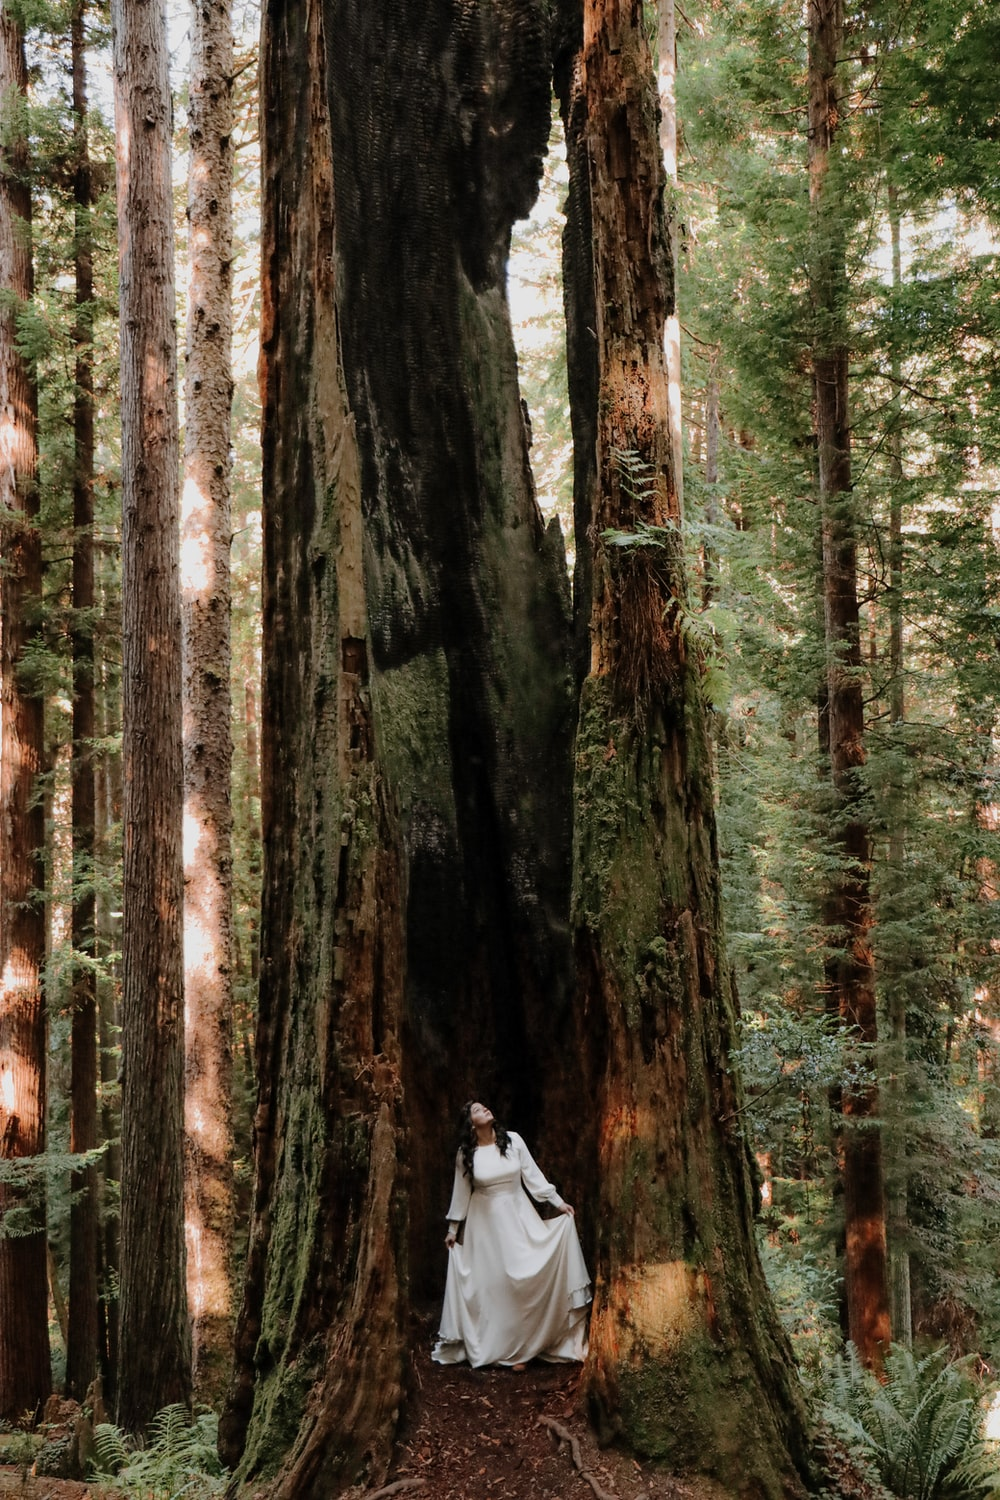 woman in white jacket standing in the middle of the forest during daytime